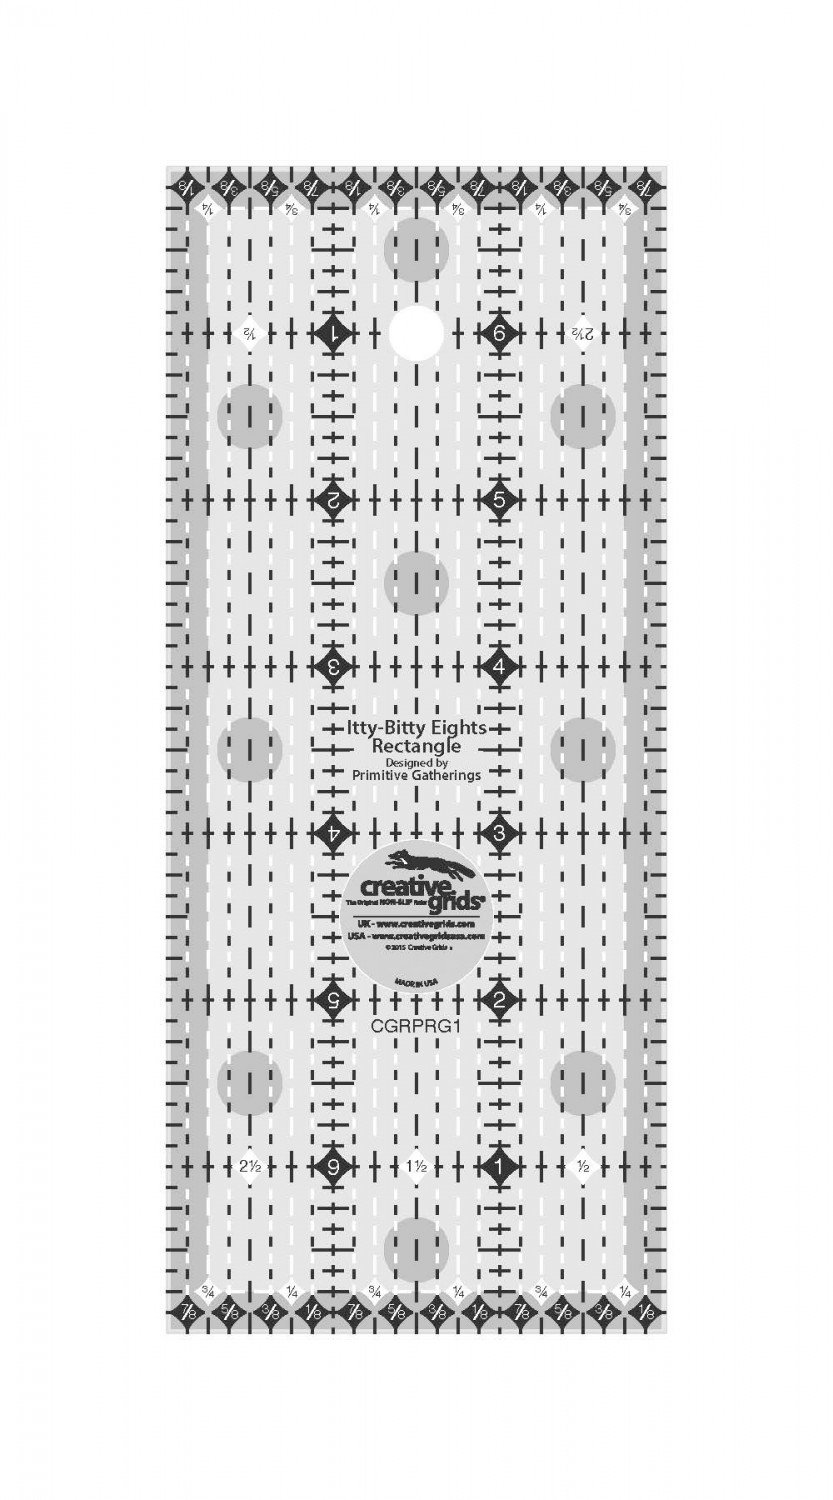 Ruler - Creative Grids - Itty Bitty Eights Ruler - 3 X 7